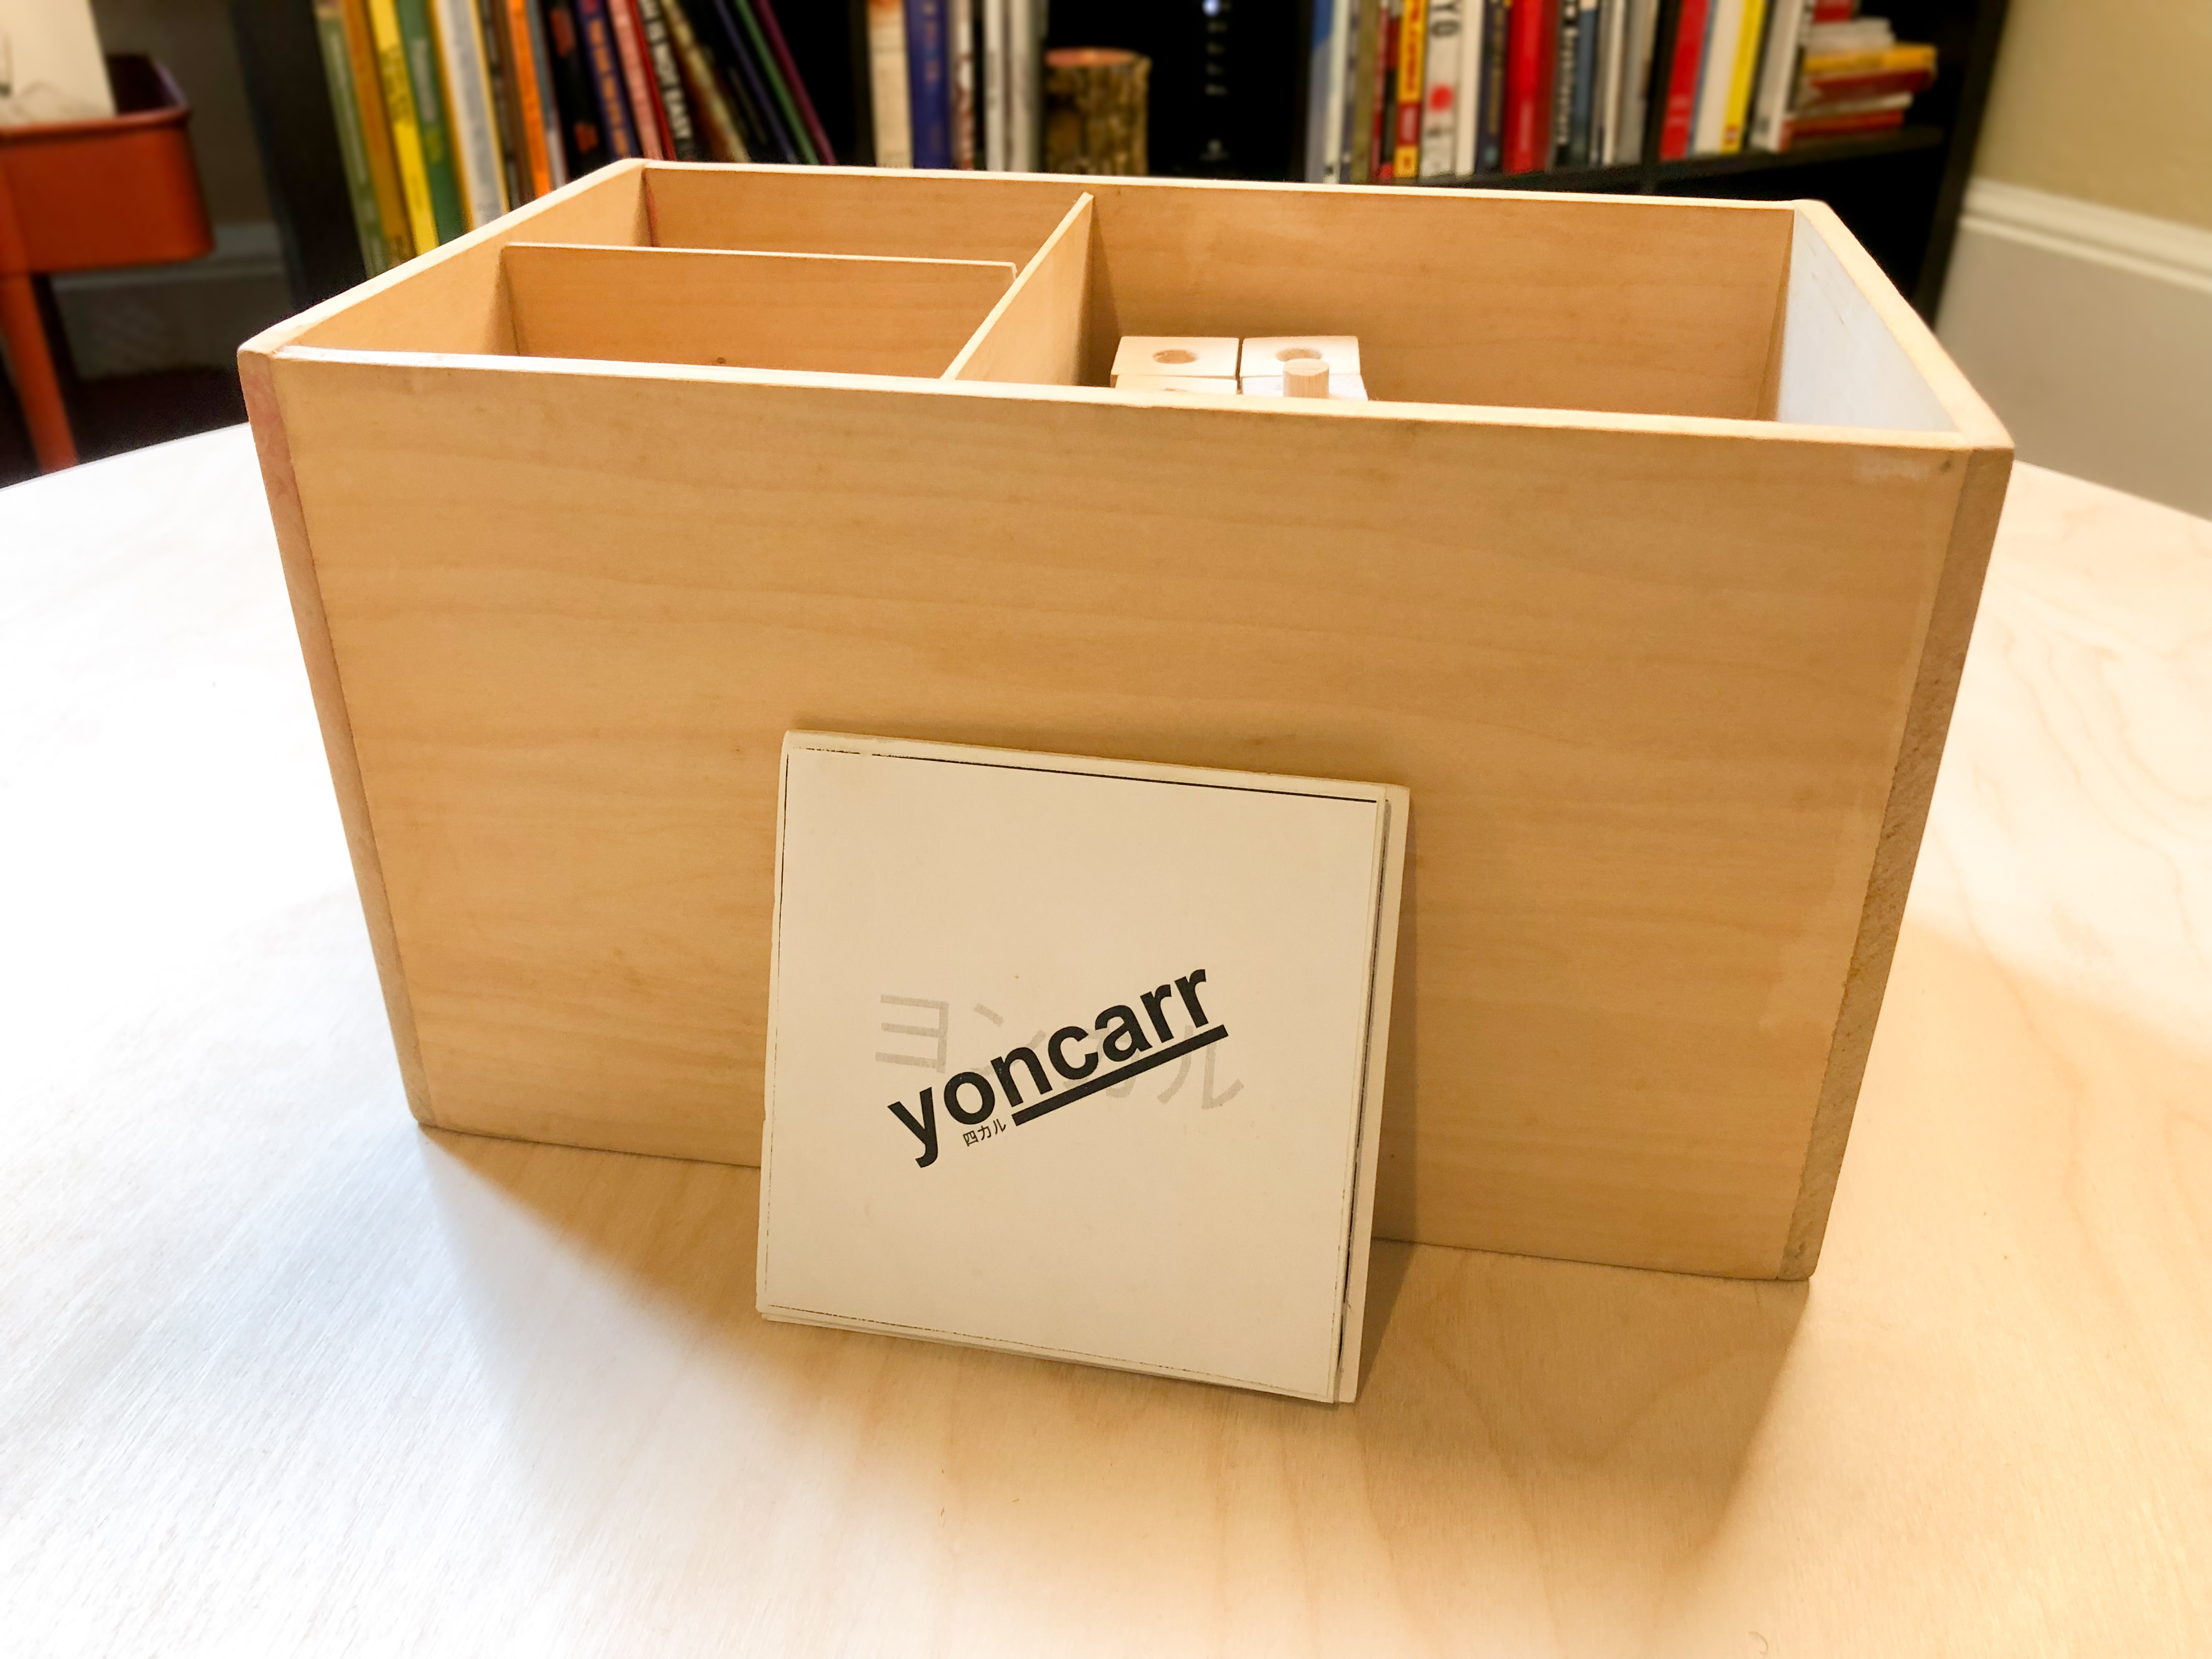 yoncarr toy box and booklet